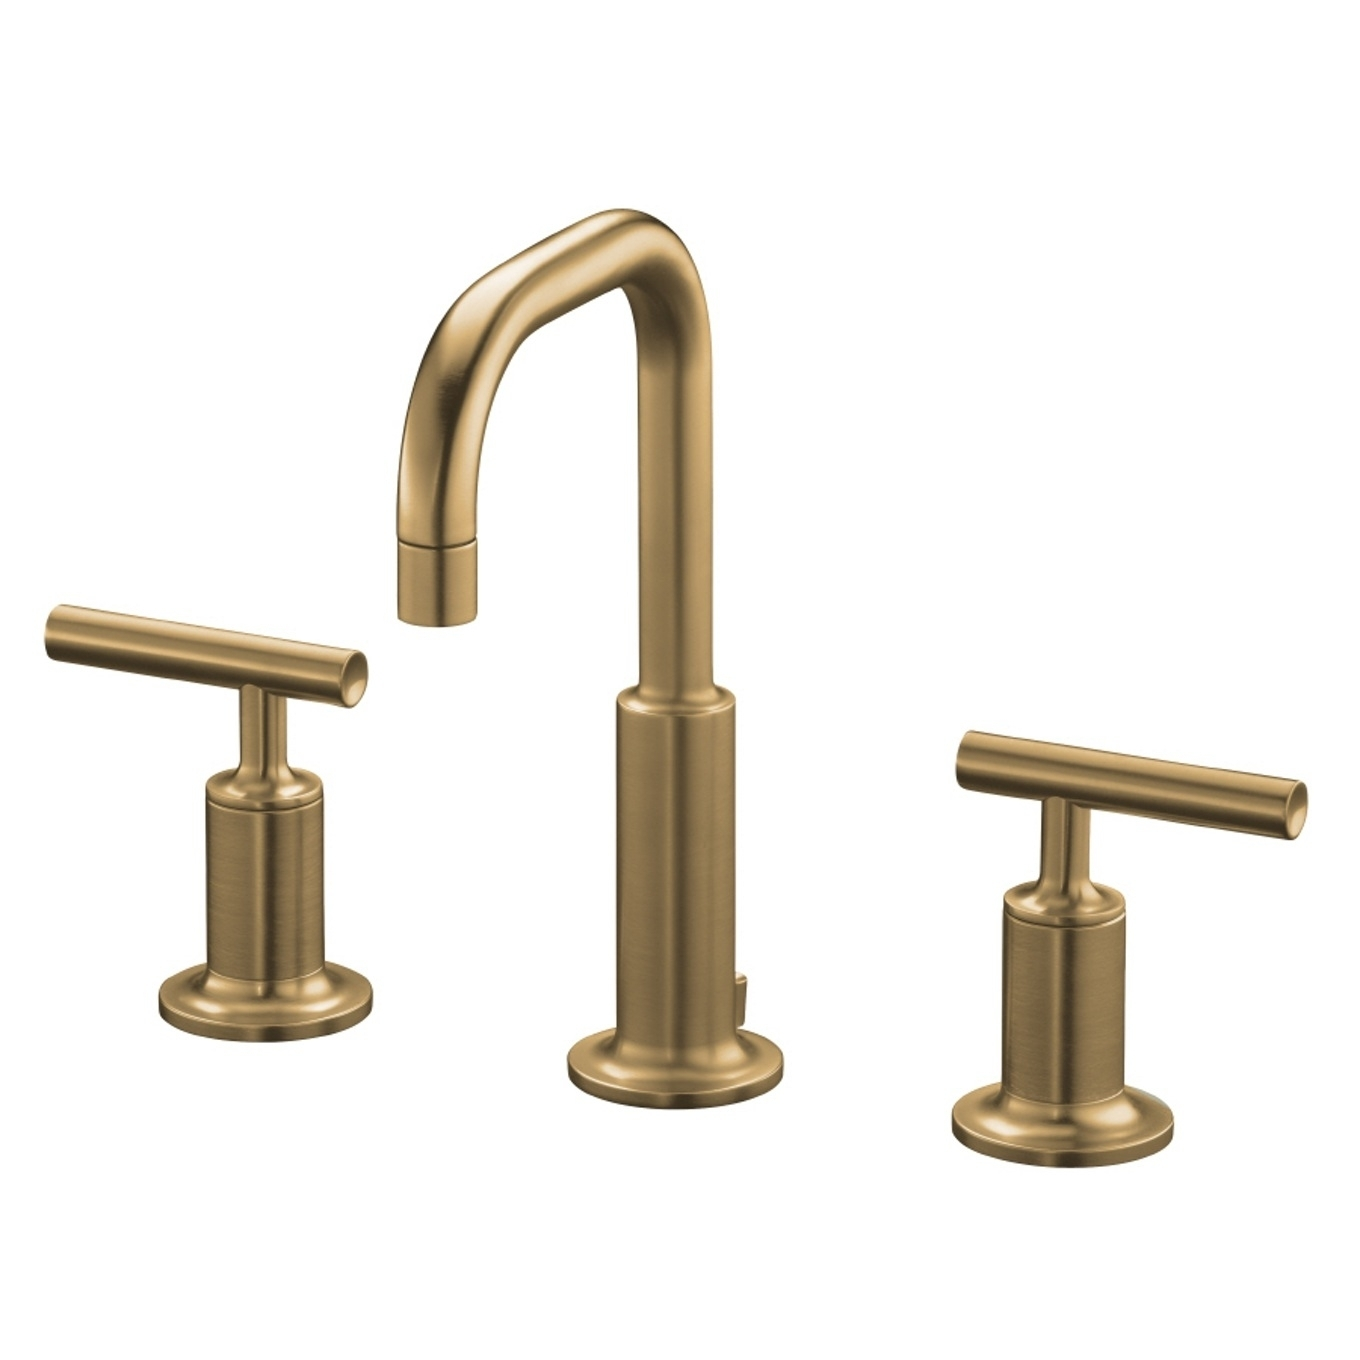 Ideas, mobile home kitchen faucet with sprayer mobile home kitchen faucet with sprayer faucets american hardware mfg mobile home plumbing spouts in 1360 x 1360  .